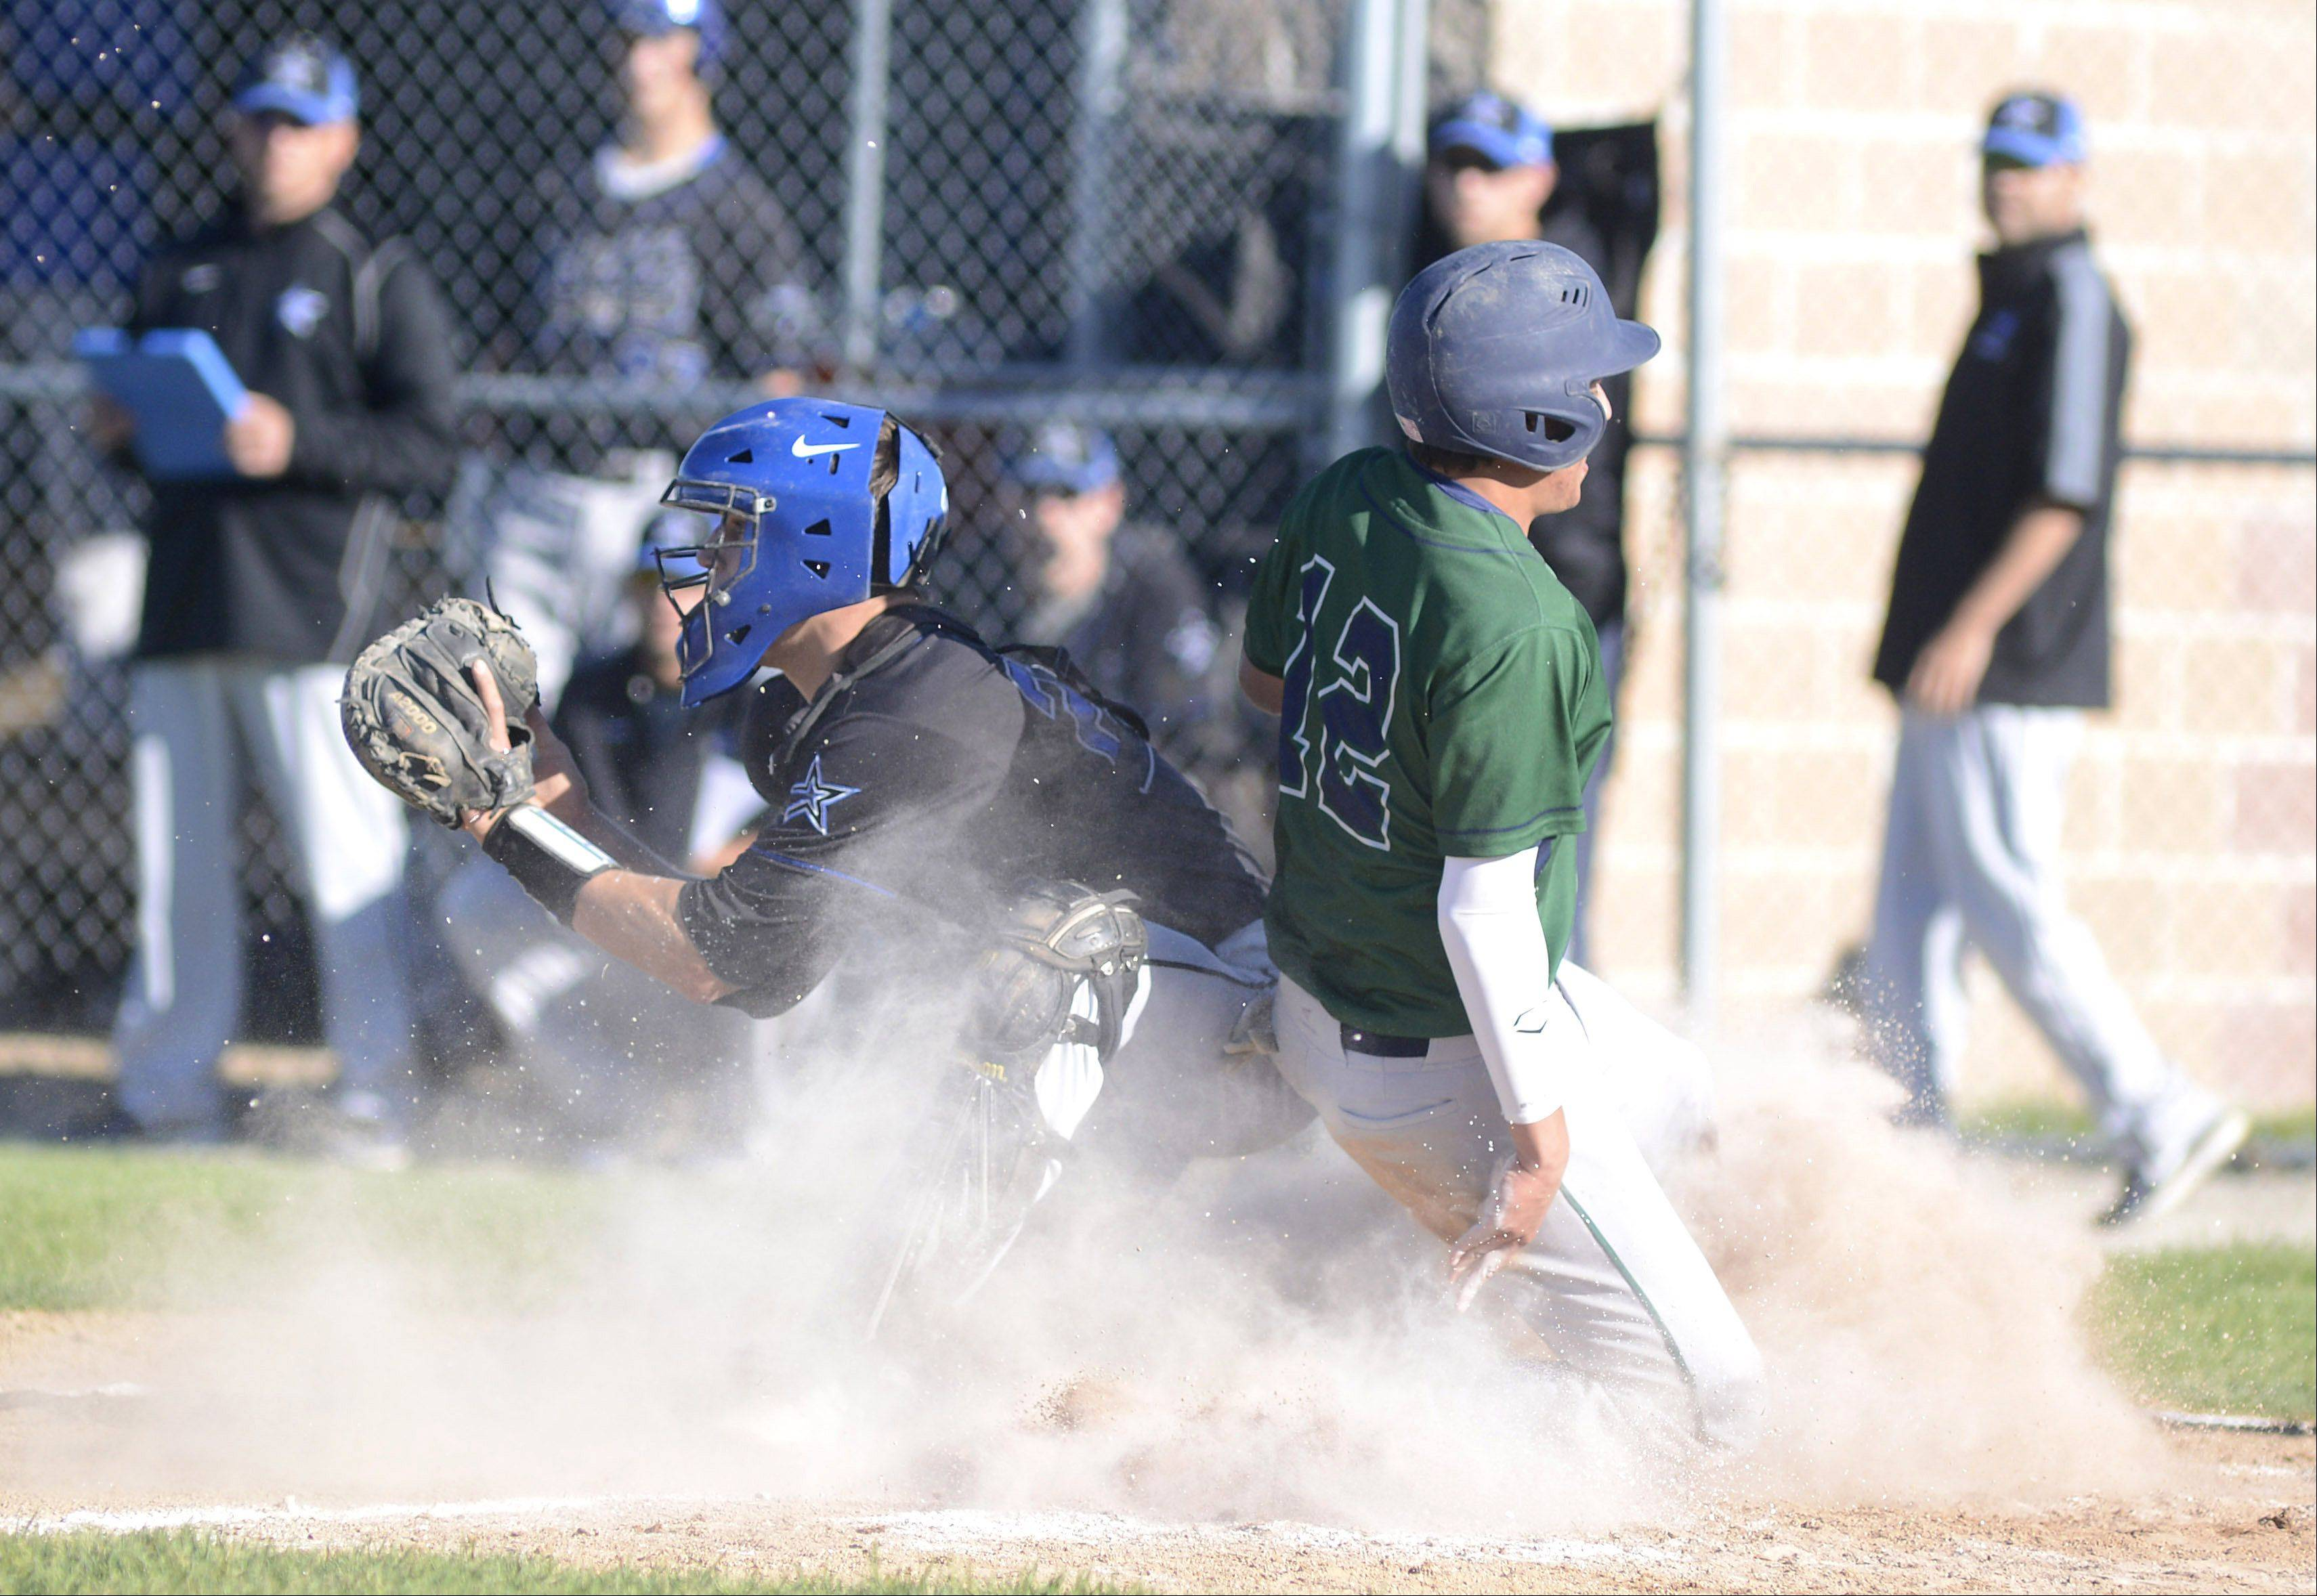 Bartlett's Jake Barrutia slides into home plate safely behind St. Charles North catcher Ryan Thomas in the fifth inning Friday.